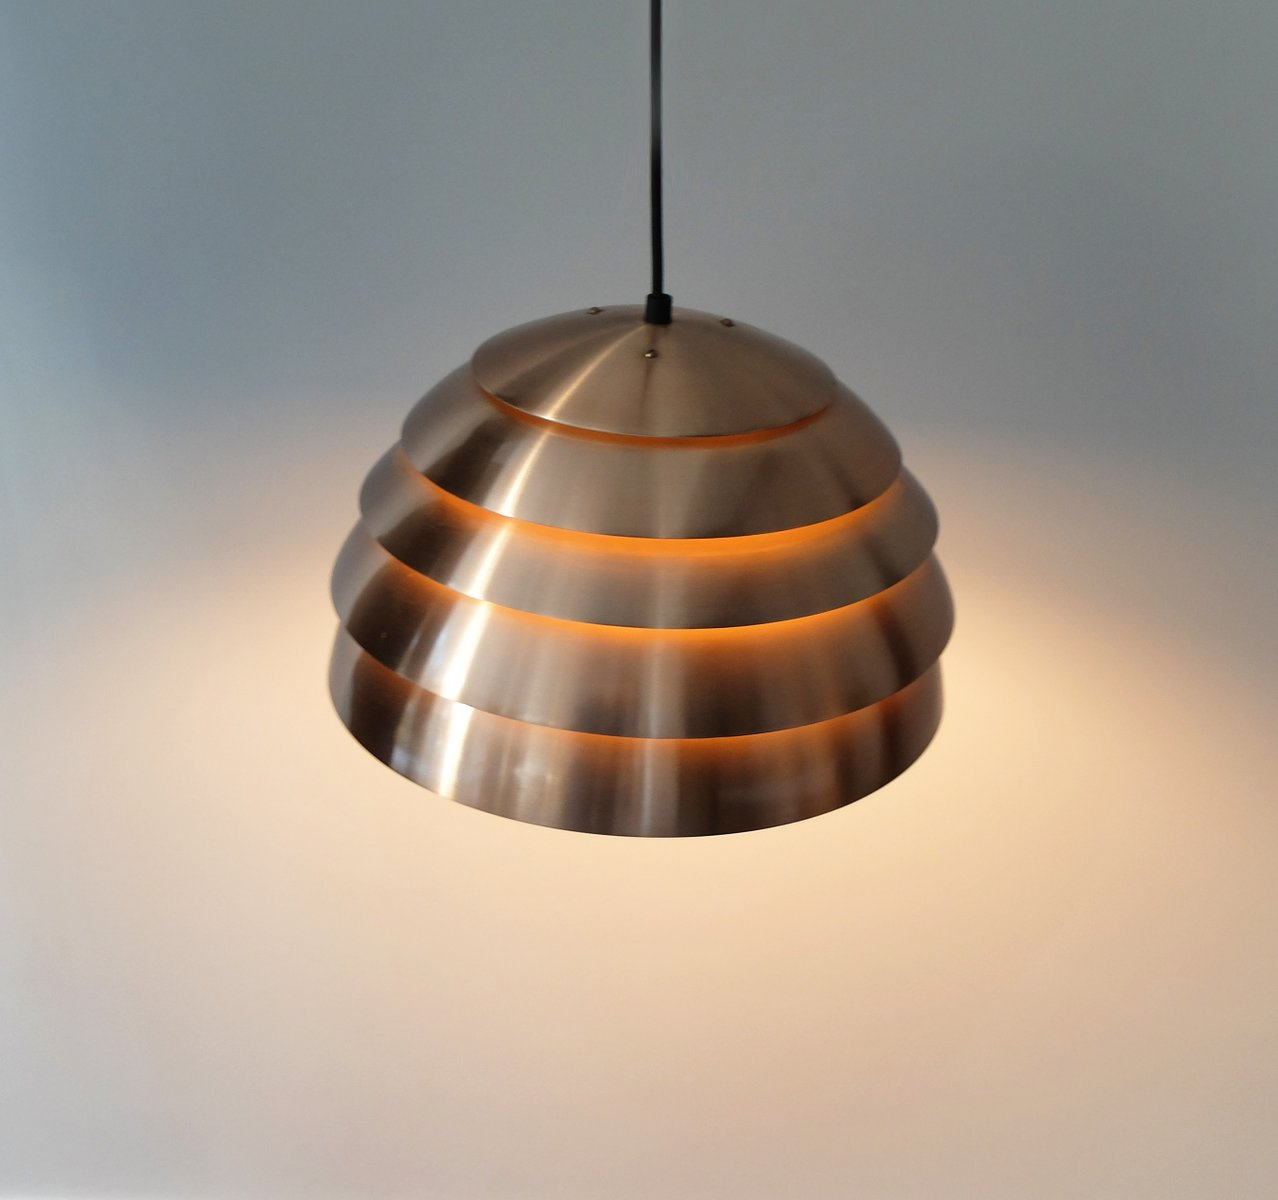 clay dome pendant products lighting navy